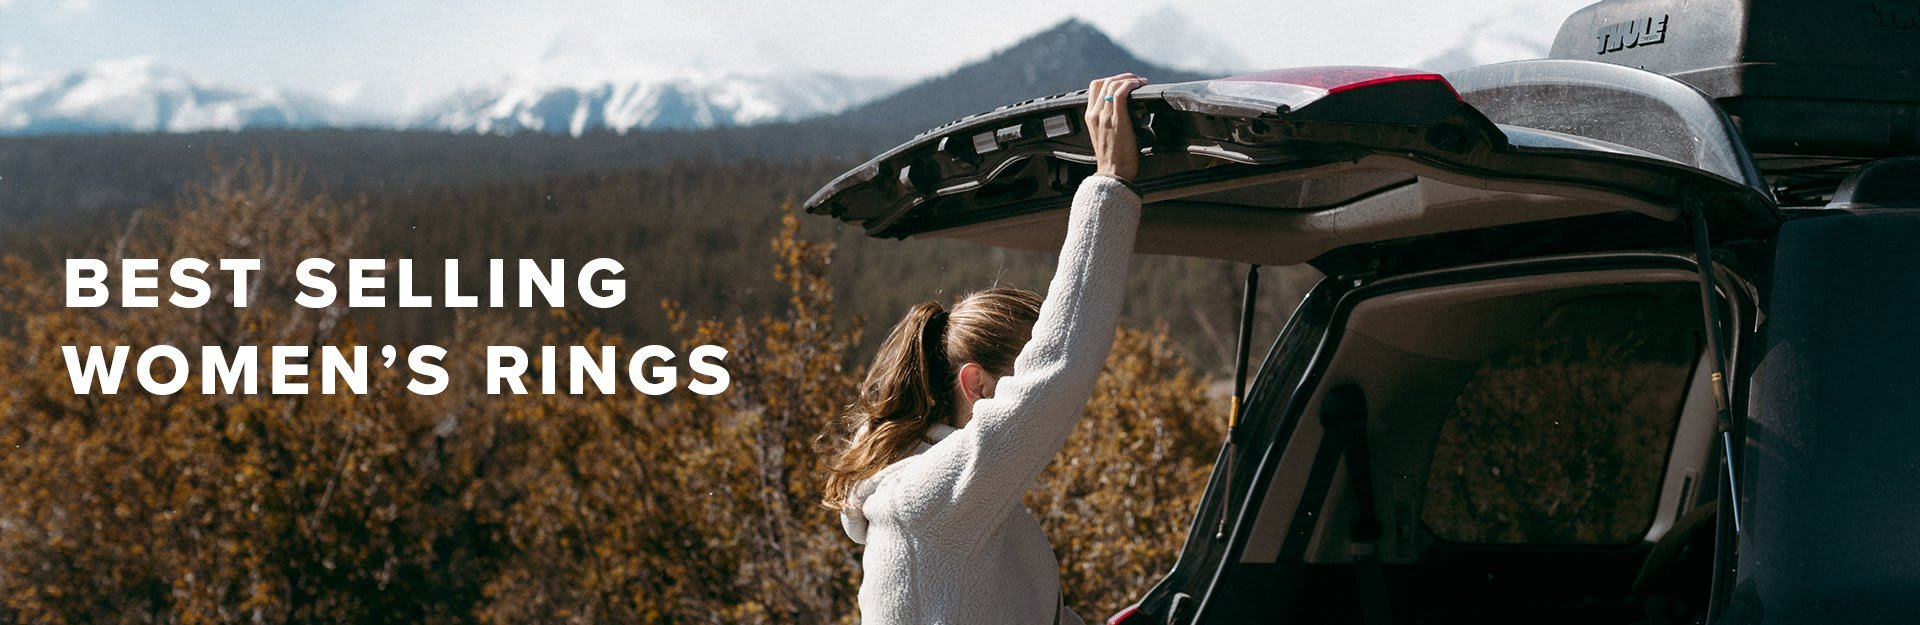 Best Selling Women's Rings, women holding the hatch of her car up with mountains in the background